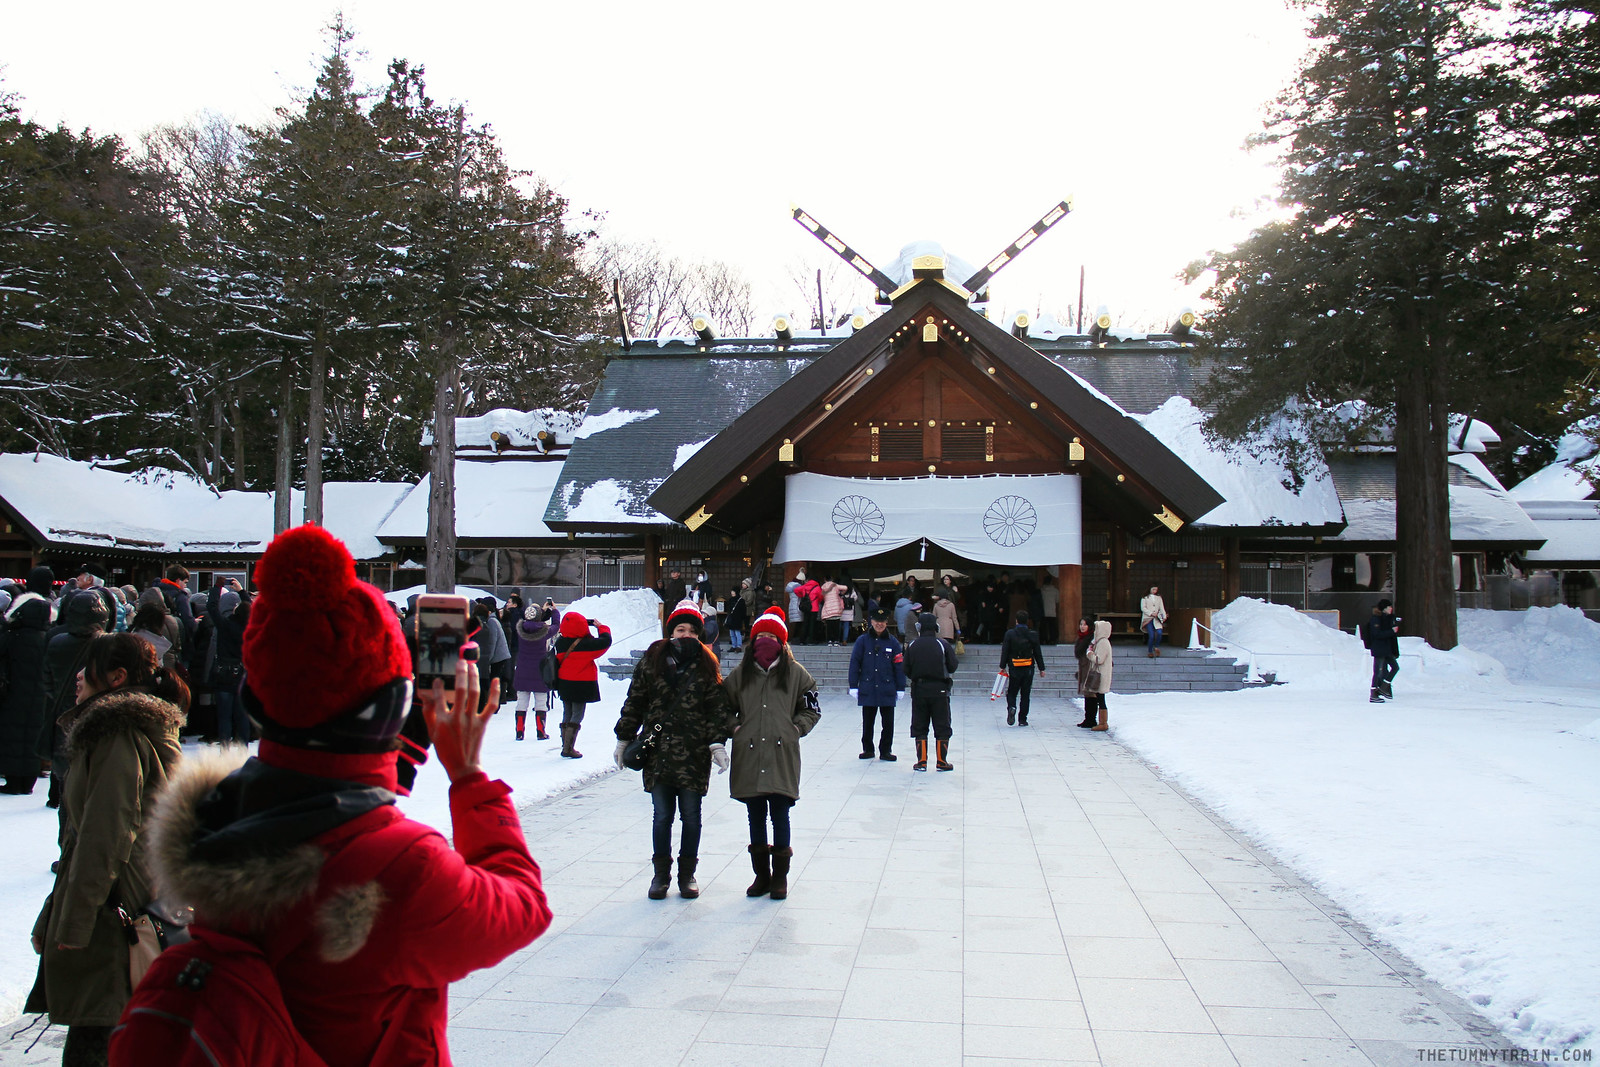 32762248542 3b4d890486 h - Sapporo Snow And Smile: 8 Unforgettable Winter Experiences in Sapporo City